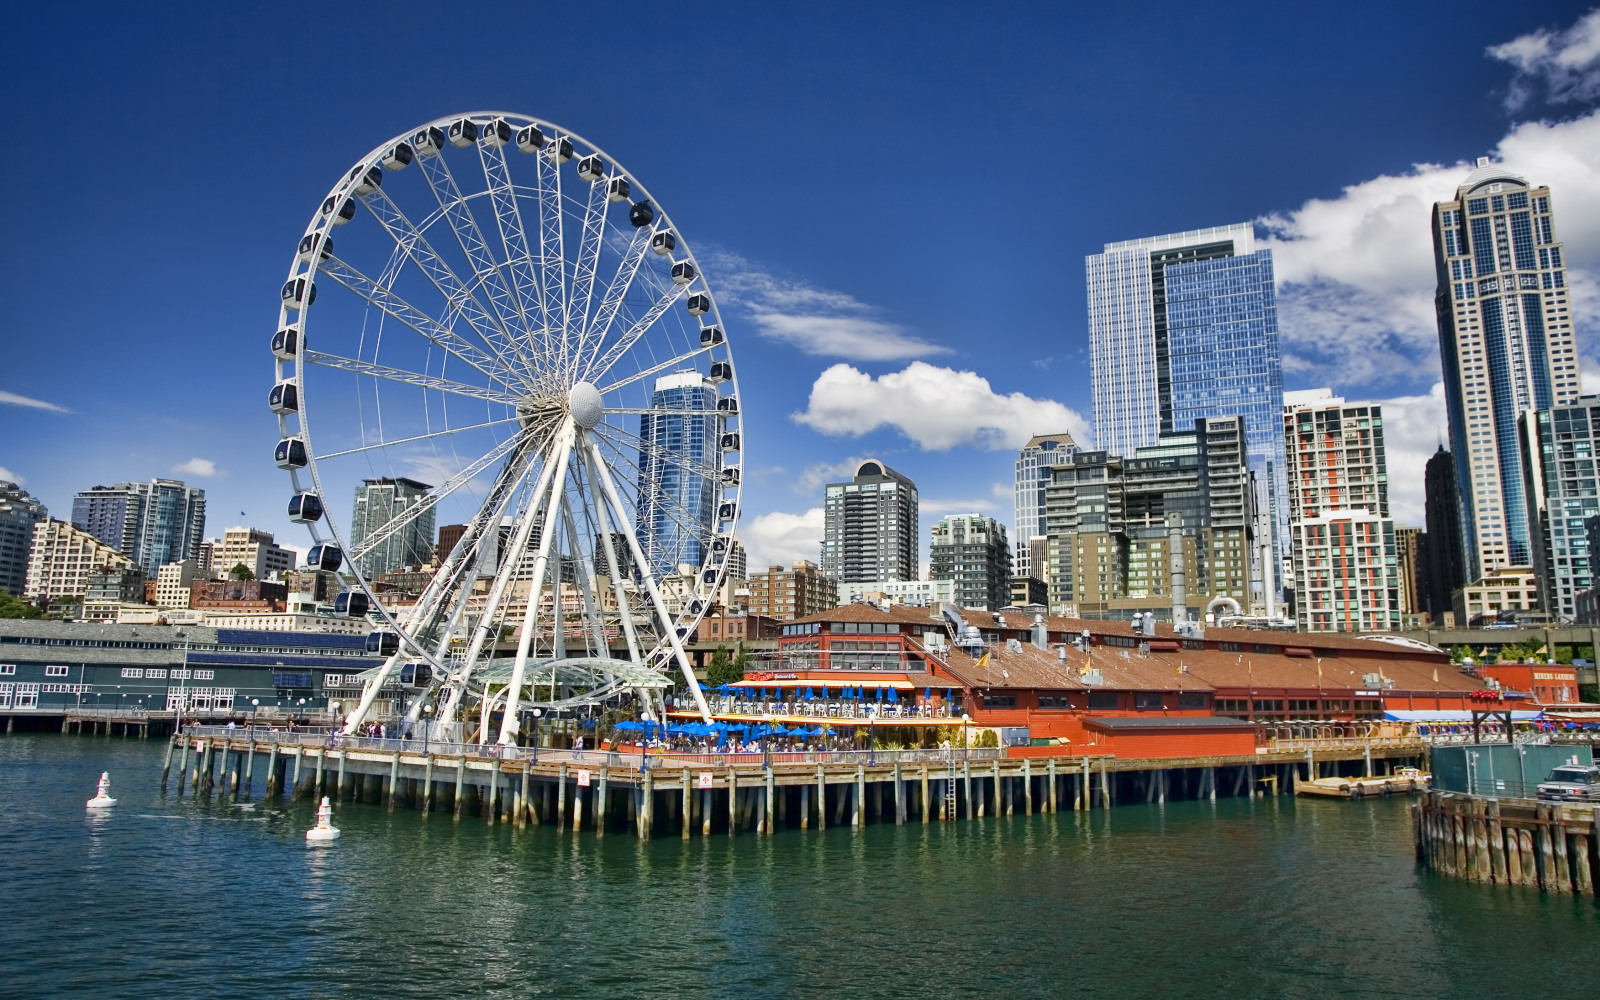 seattle s ferris wheel at pier 57 seattle great wheel